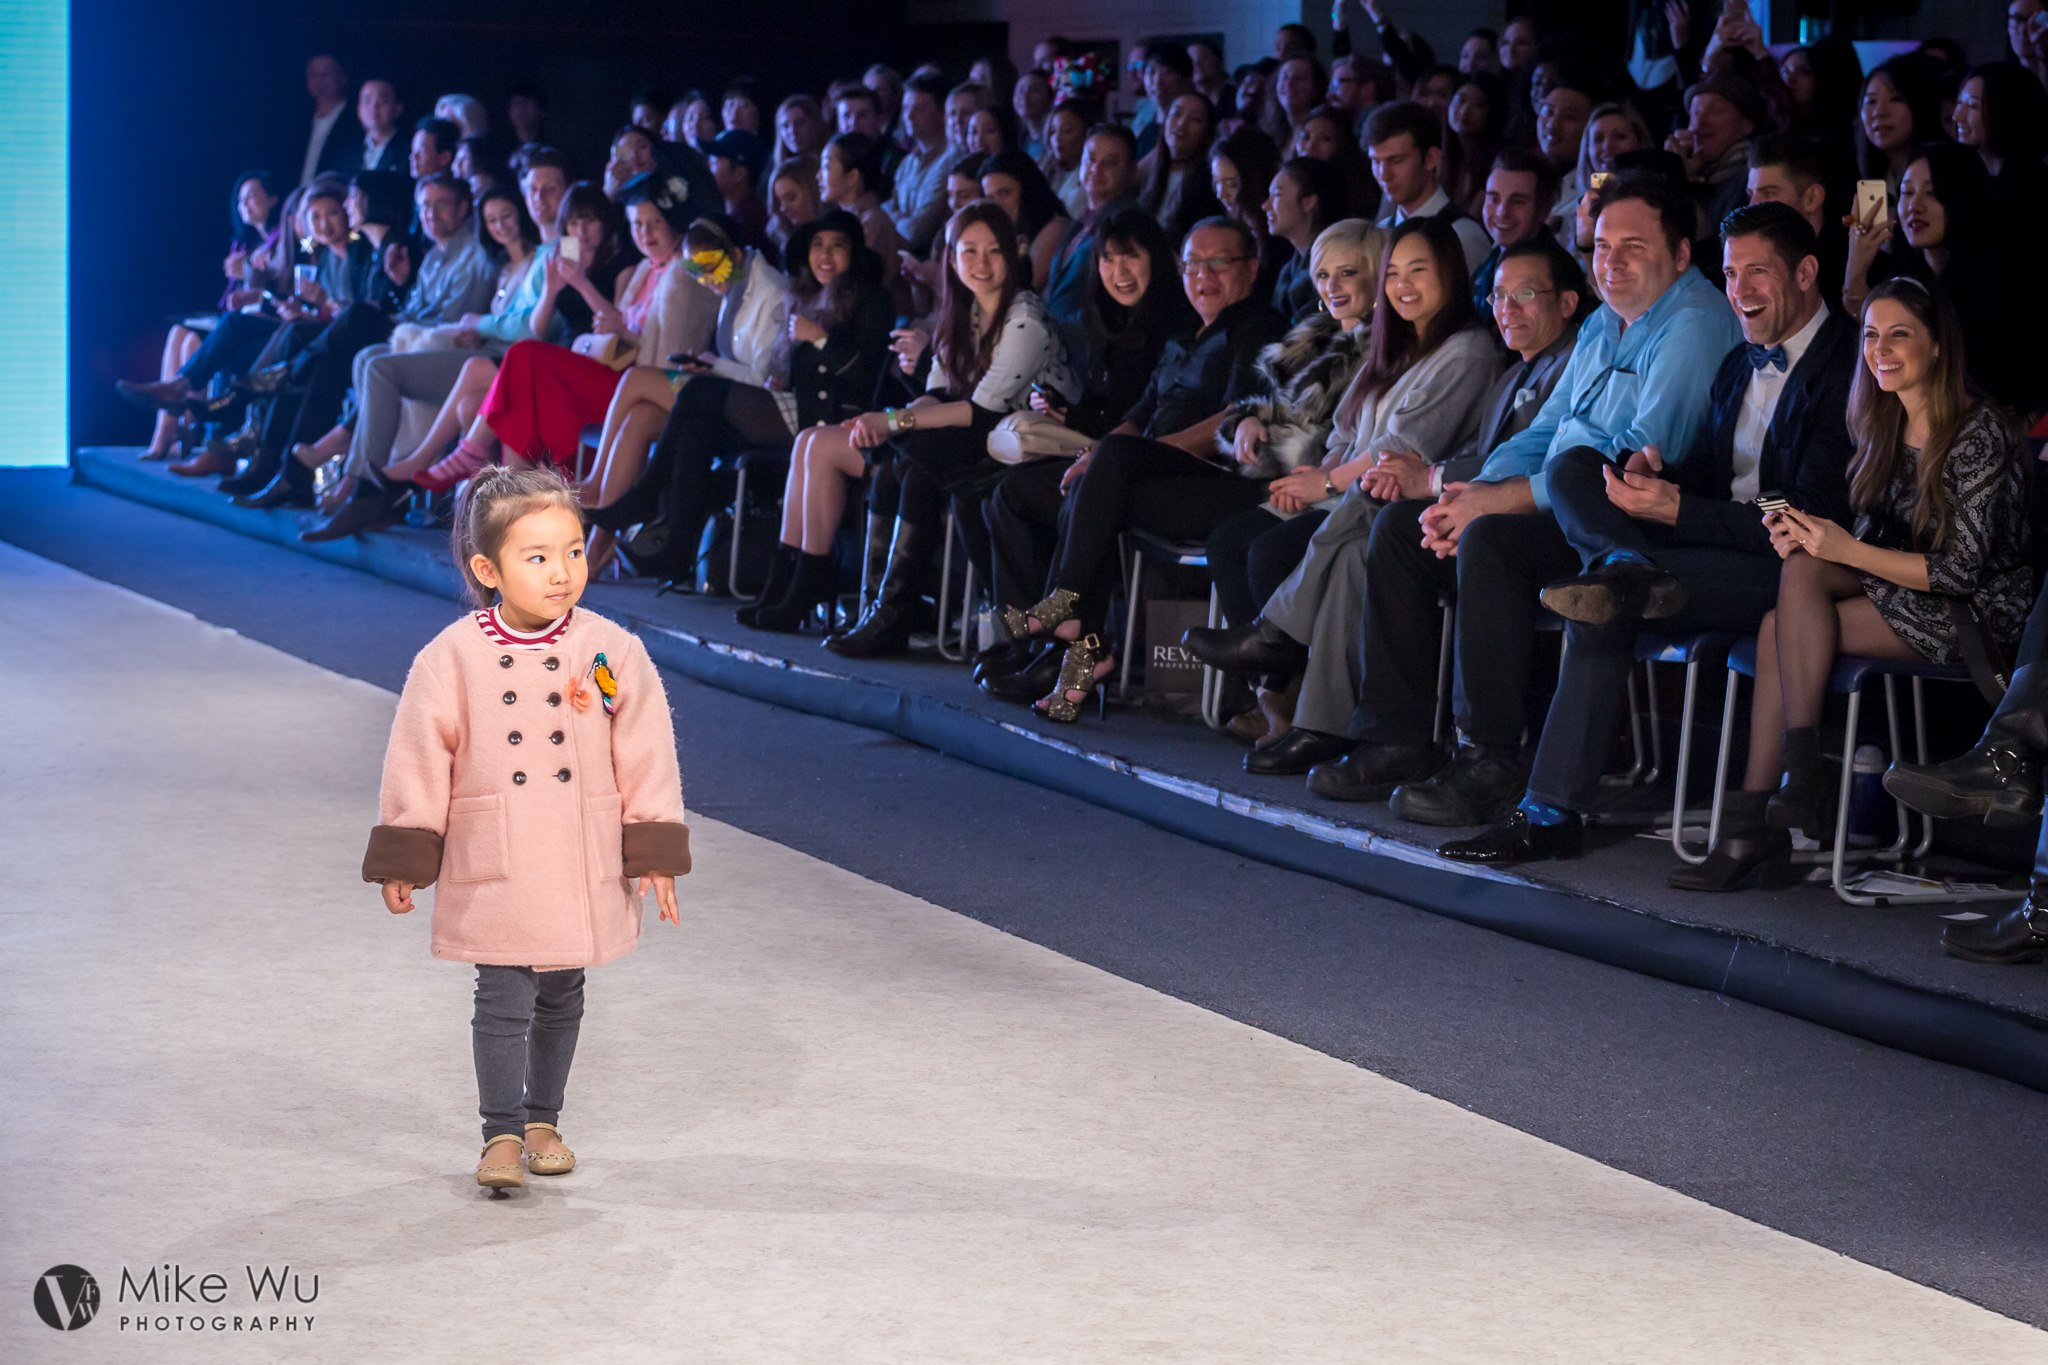 Vancouver fashion week, smile, adorable, walk, cute, audience, runway, moment, vfw, show, kid model, future